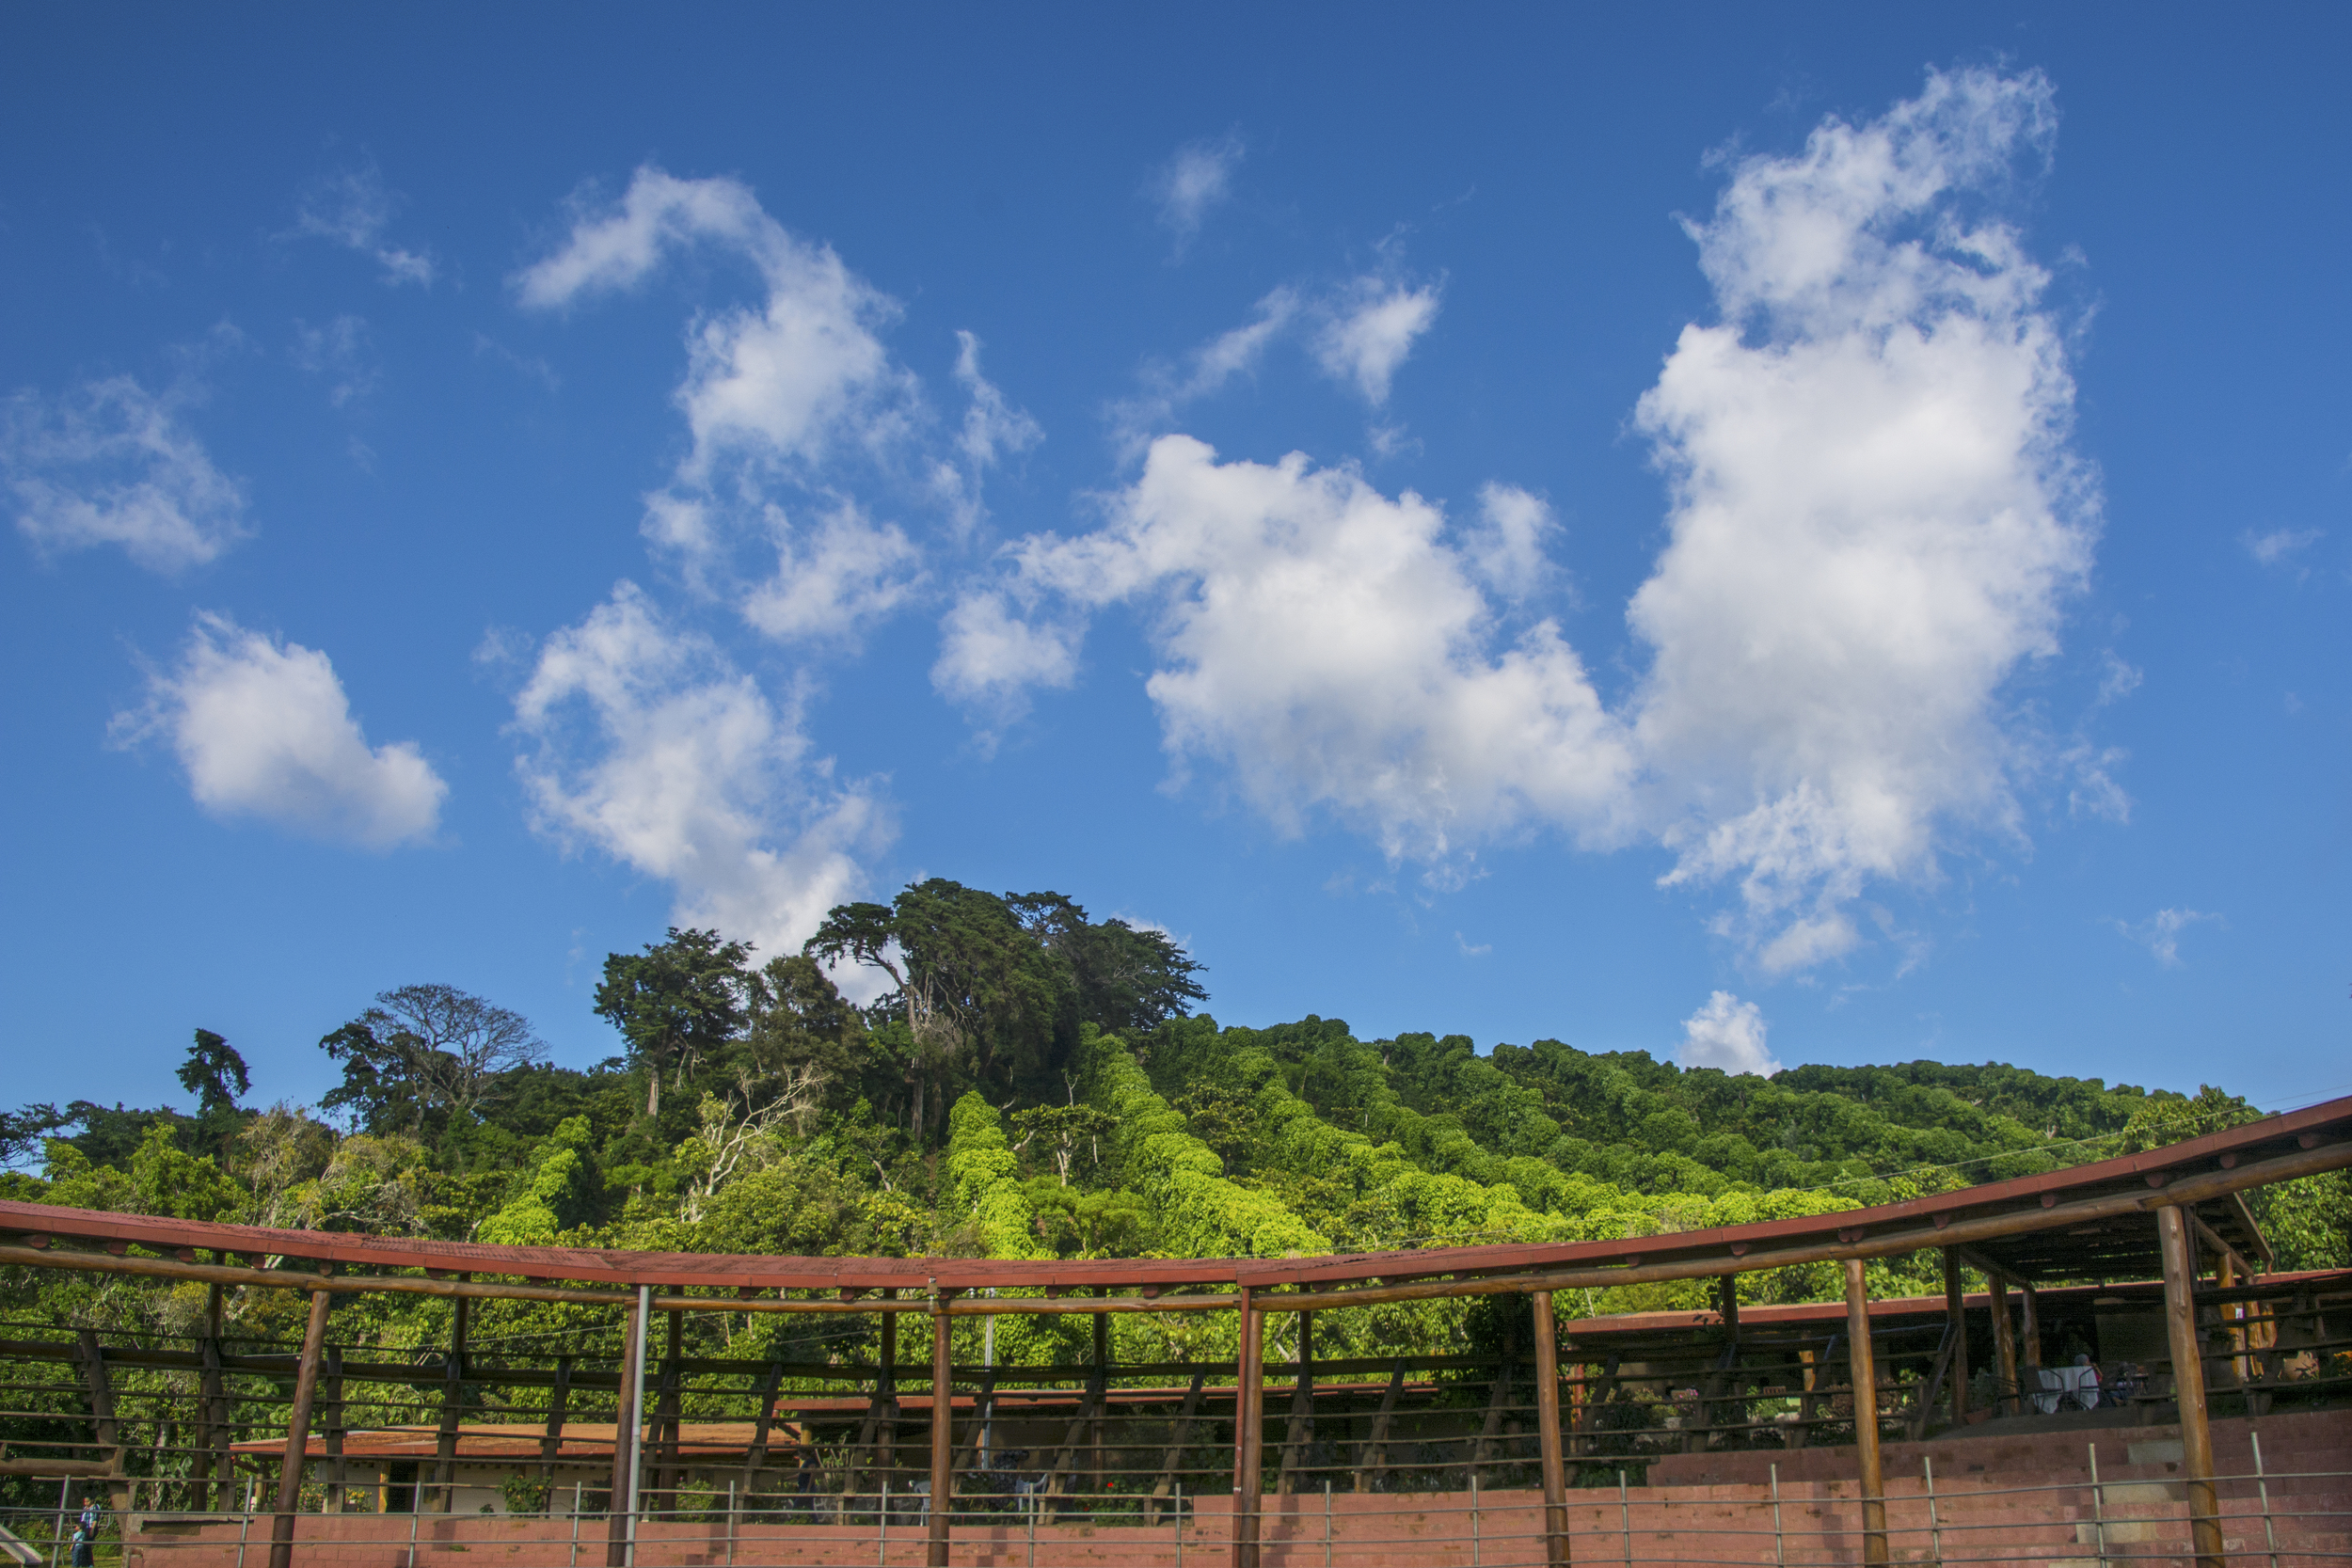 Farmers plant trees in lines to shade coffee plants. And those clouds! (Quezalapa, El Salvador)